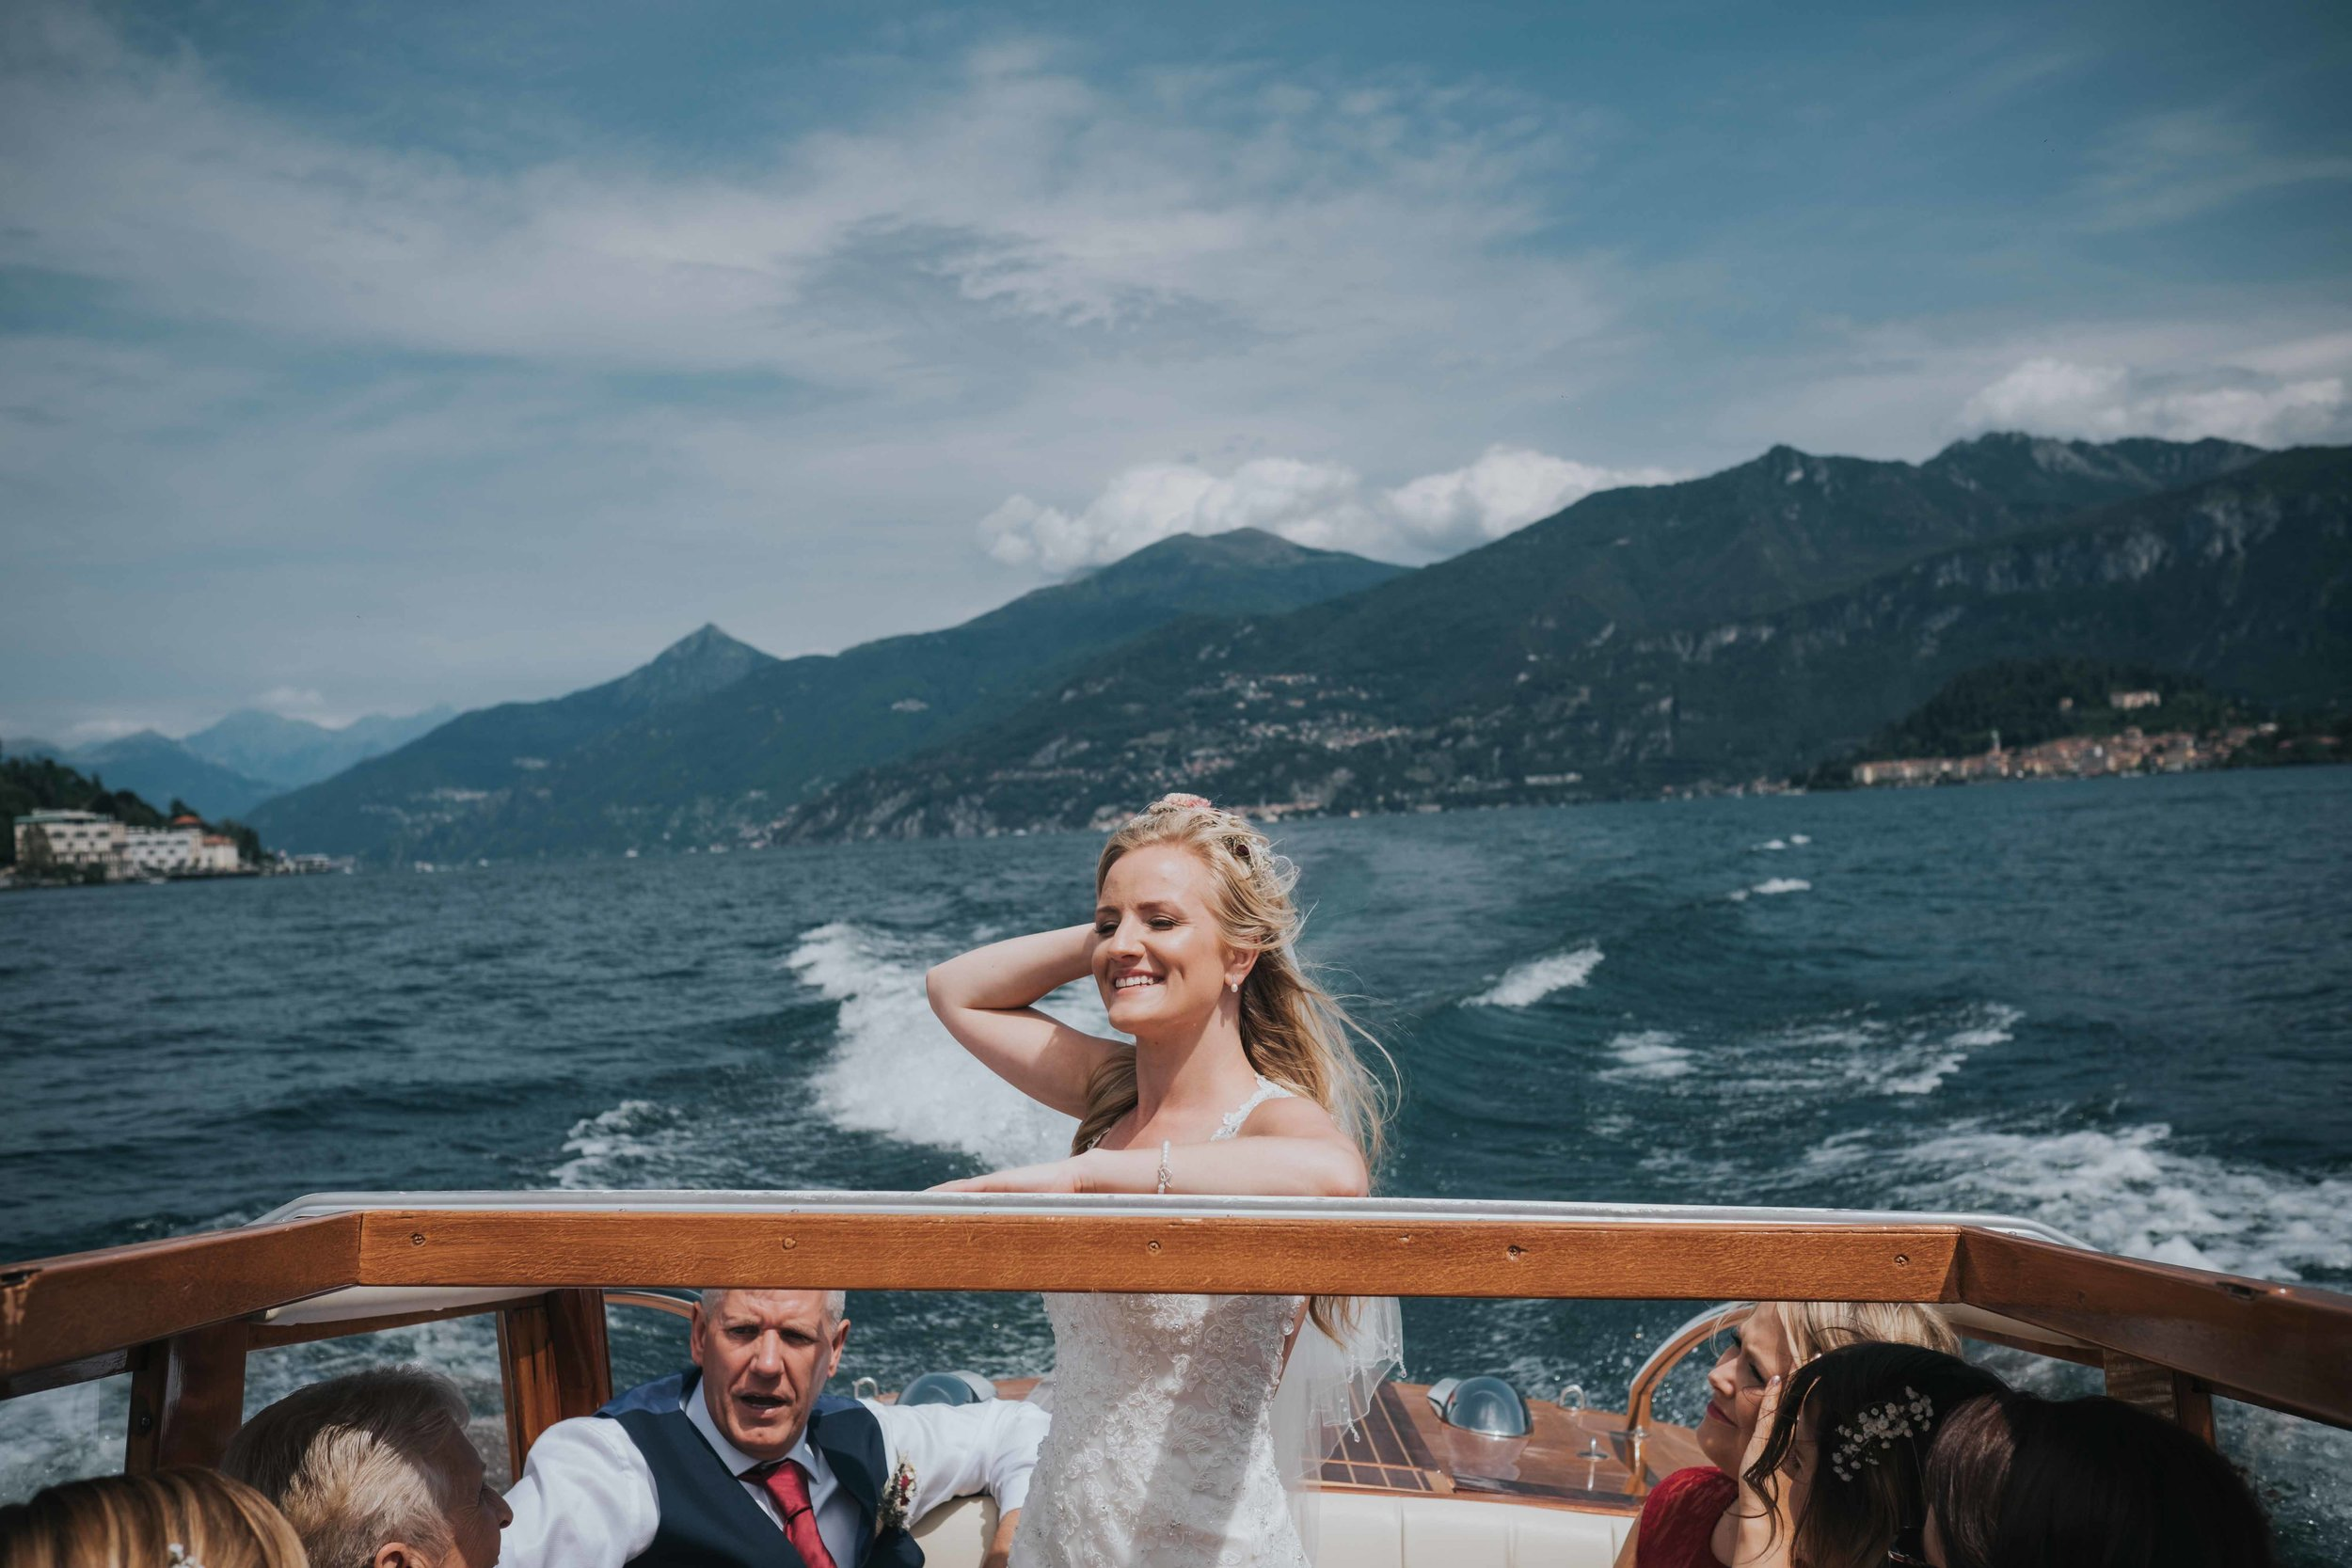 Laco Como Italy destination wedding photographer cheshire north west england documentry photography (40 of 117).jpg